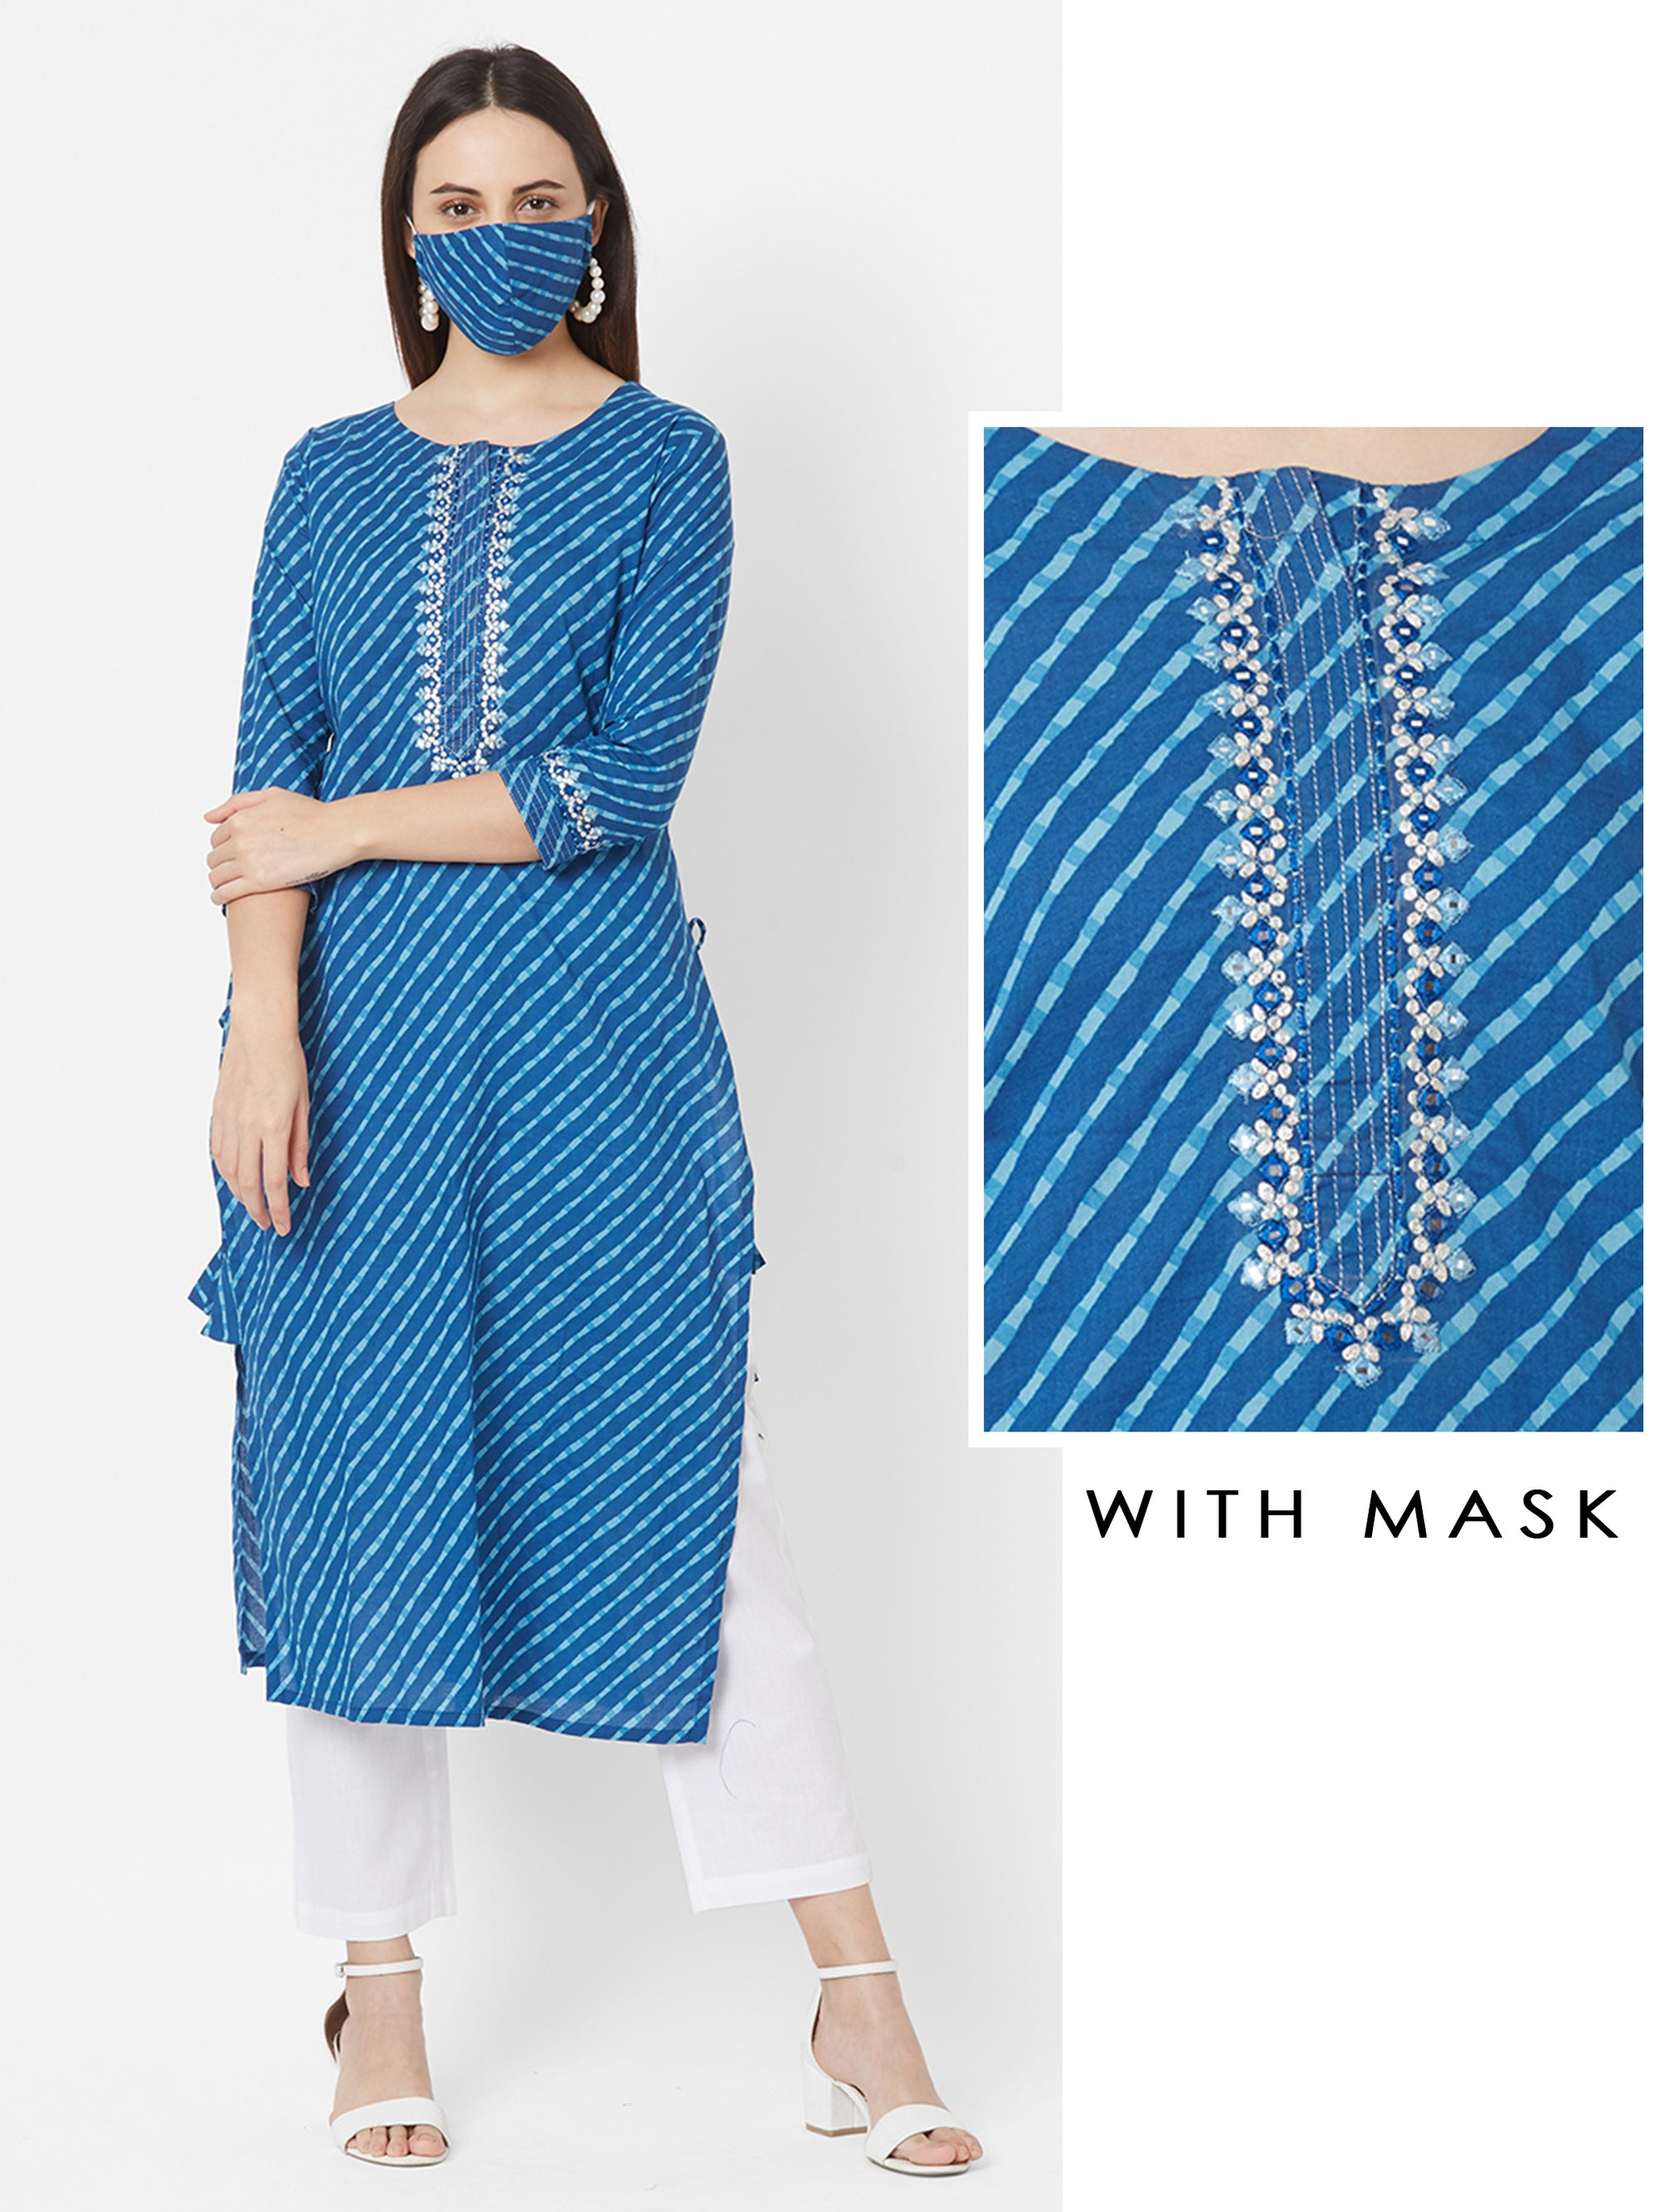 Lehariya Printed & Mirror worked Cotton Kurta with Mask – Indigo Blue